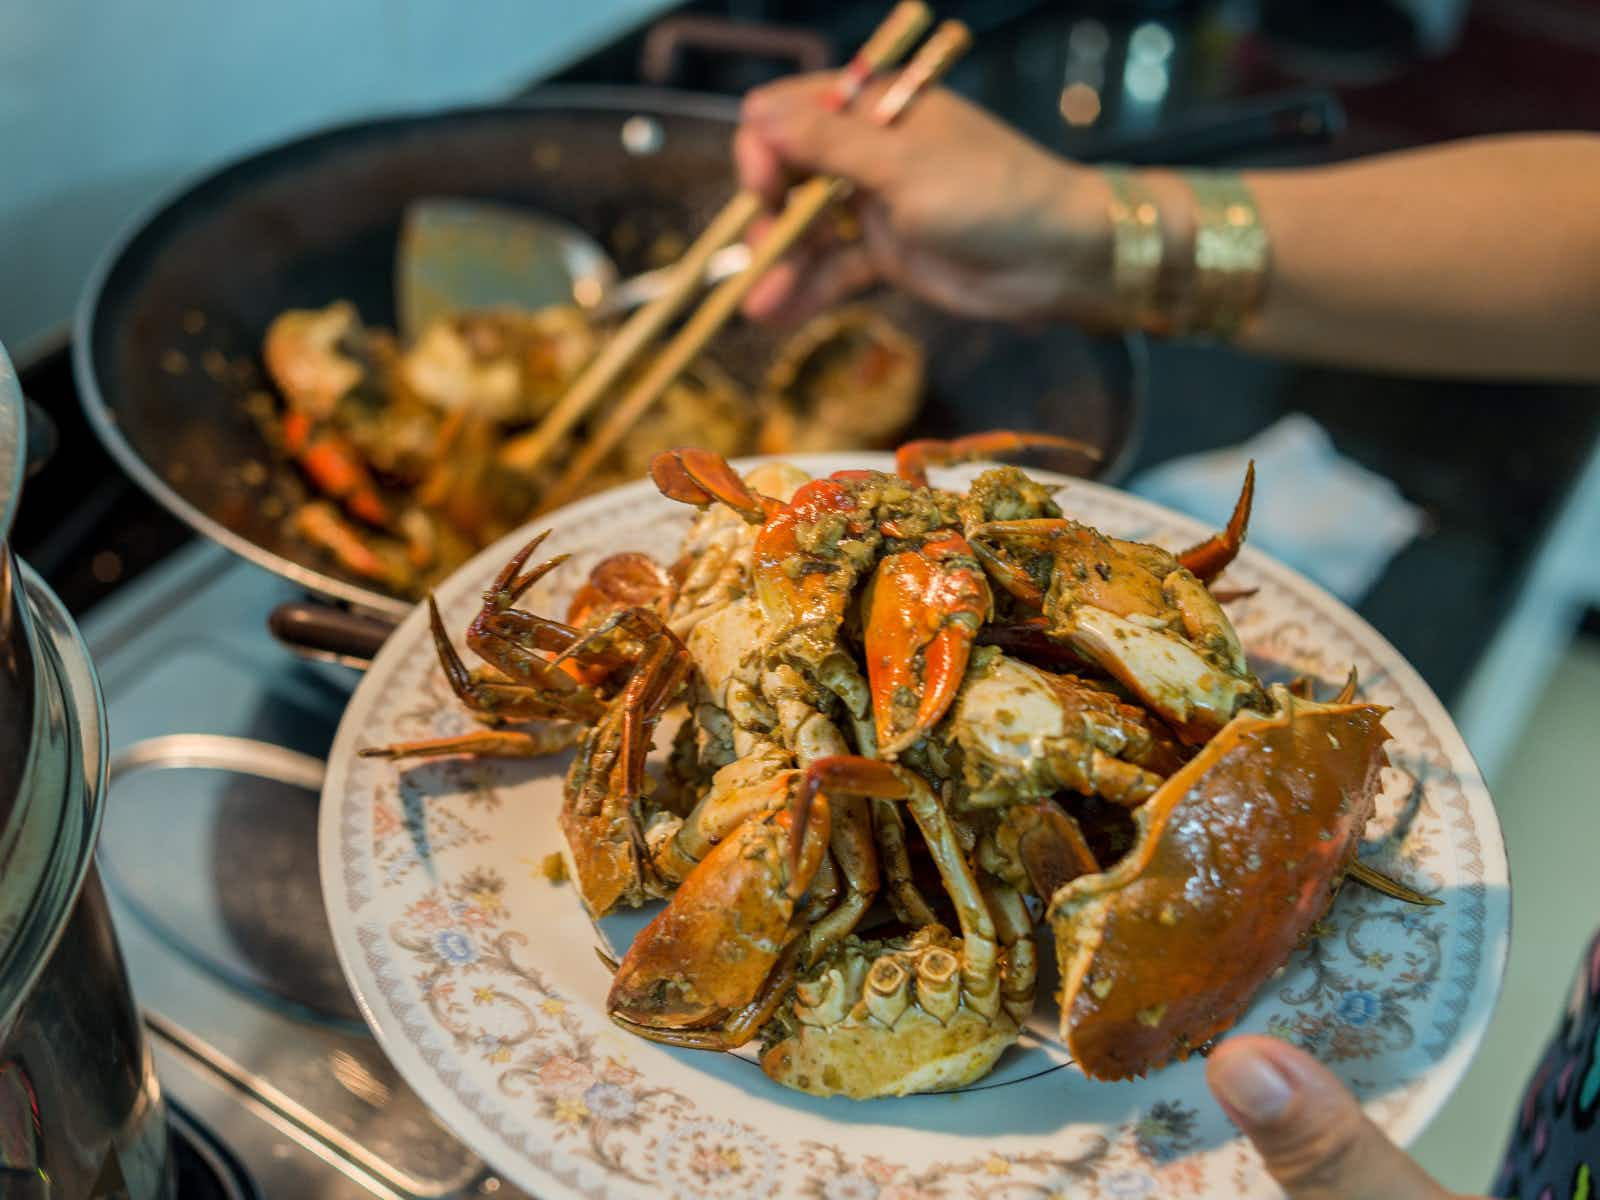 Preparing home-cooked chilly crab for dinner© SamuelBrownNG / Getty Images